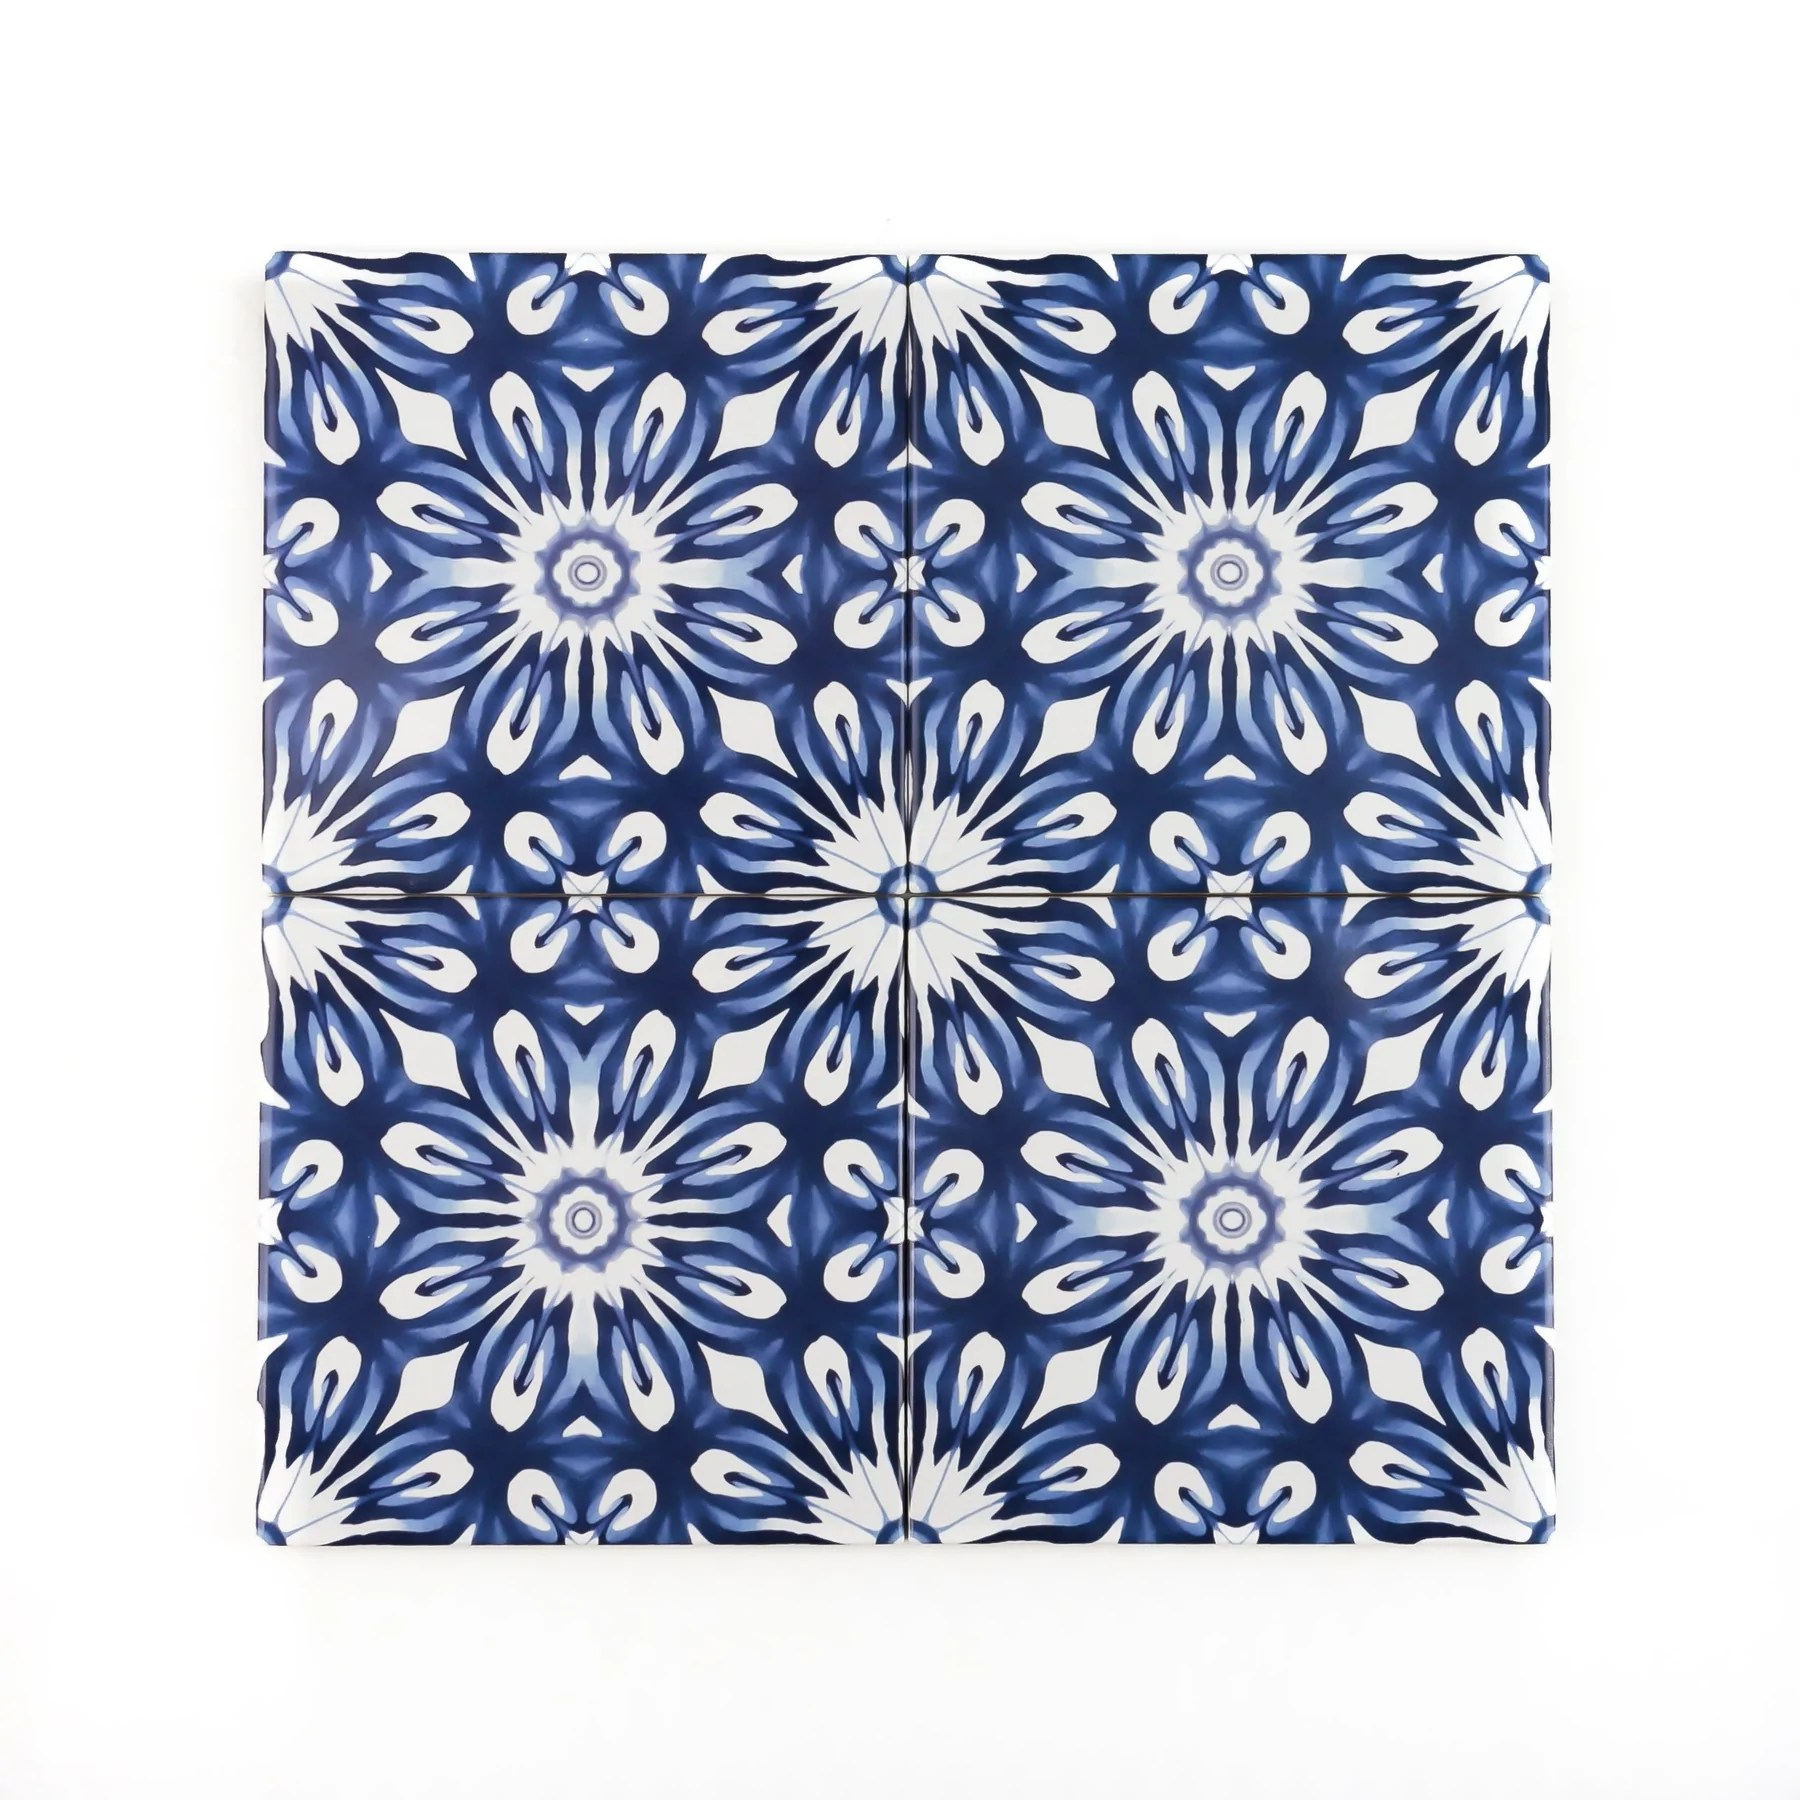 dutch delft style tiles navy blue and white flower tile fired ink version